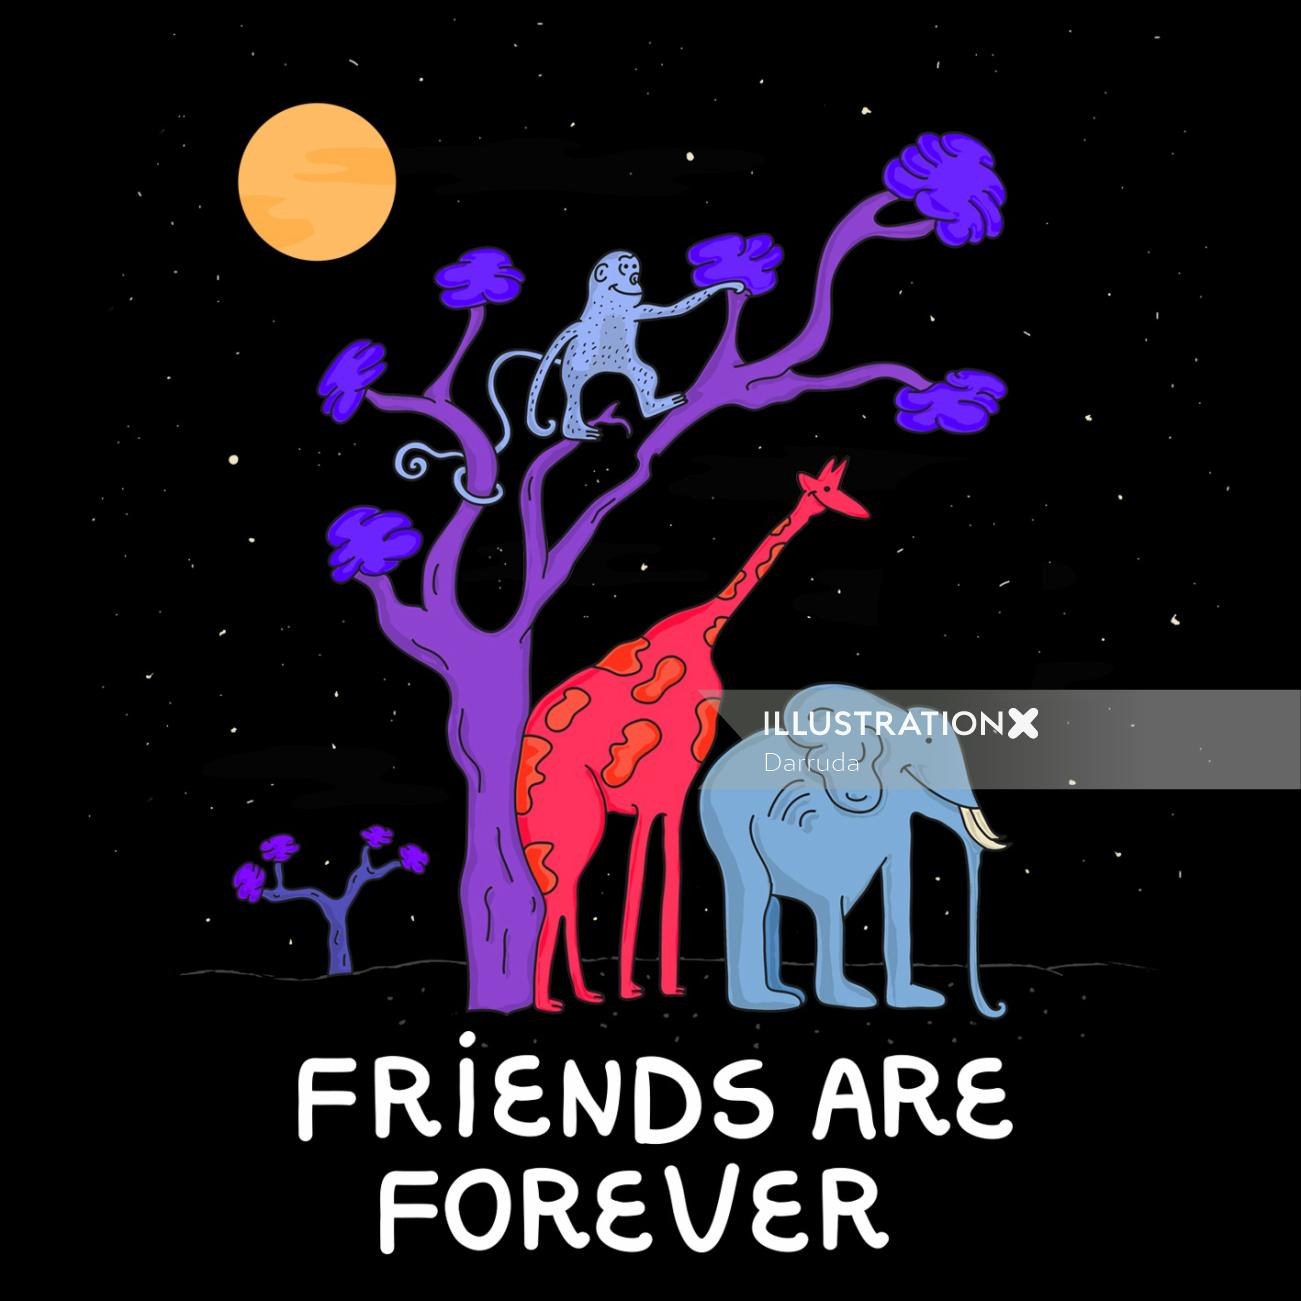 Cartoon illustration of friends are forever